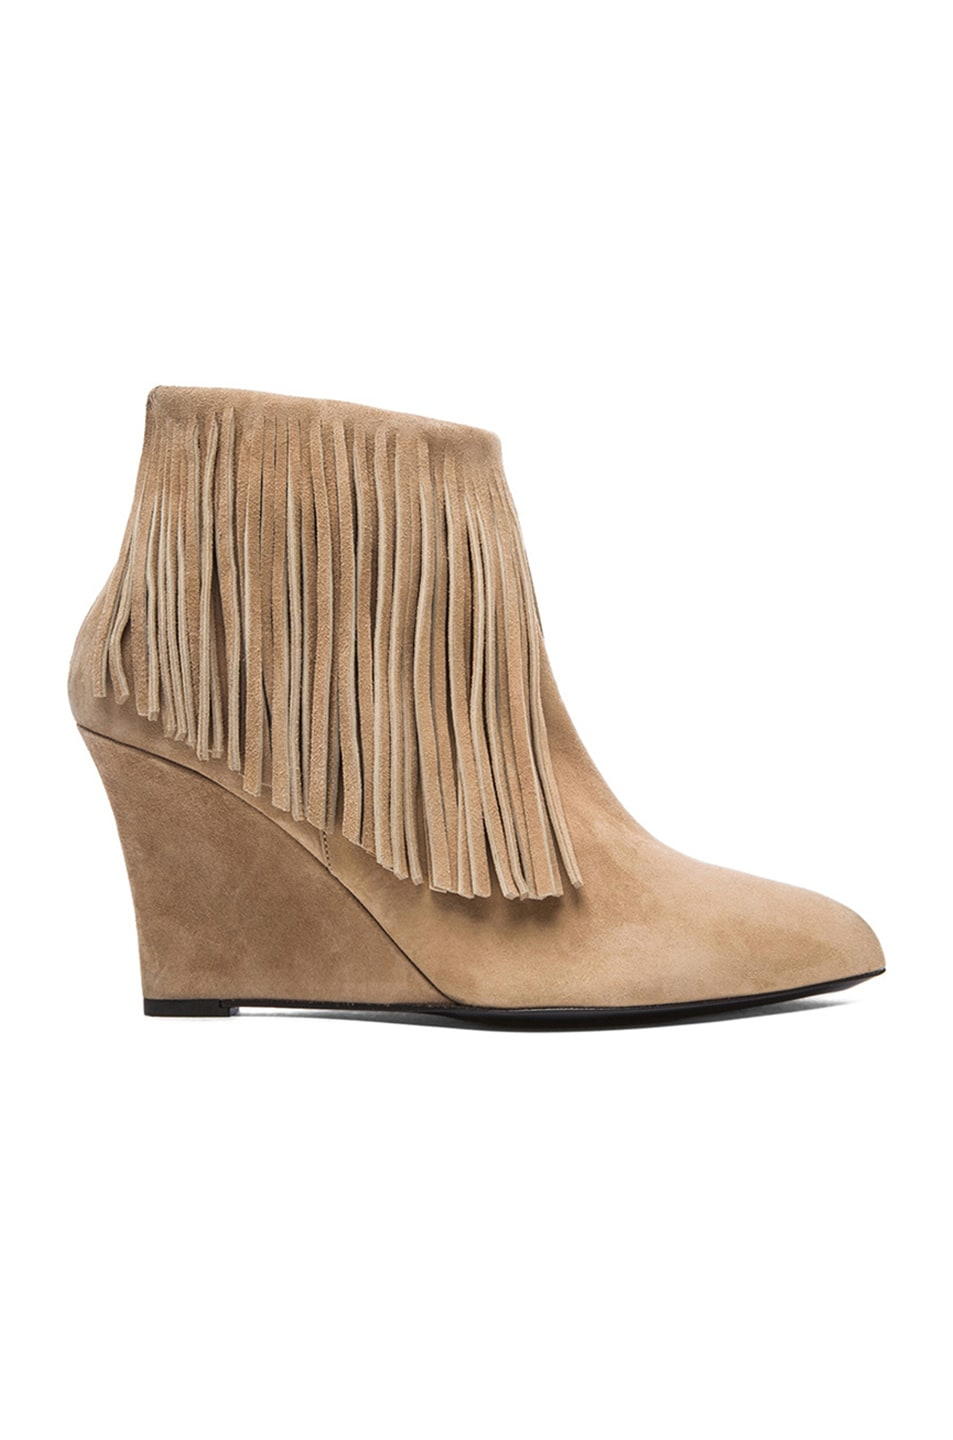 Image 1 of elysewalker los angeles Suede Fringe Booties in Taupe